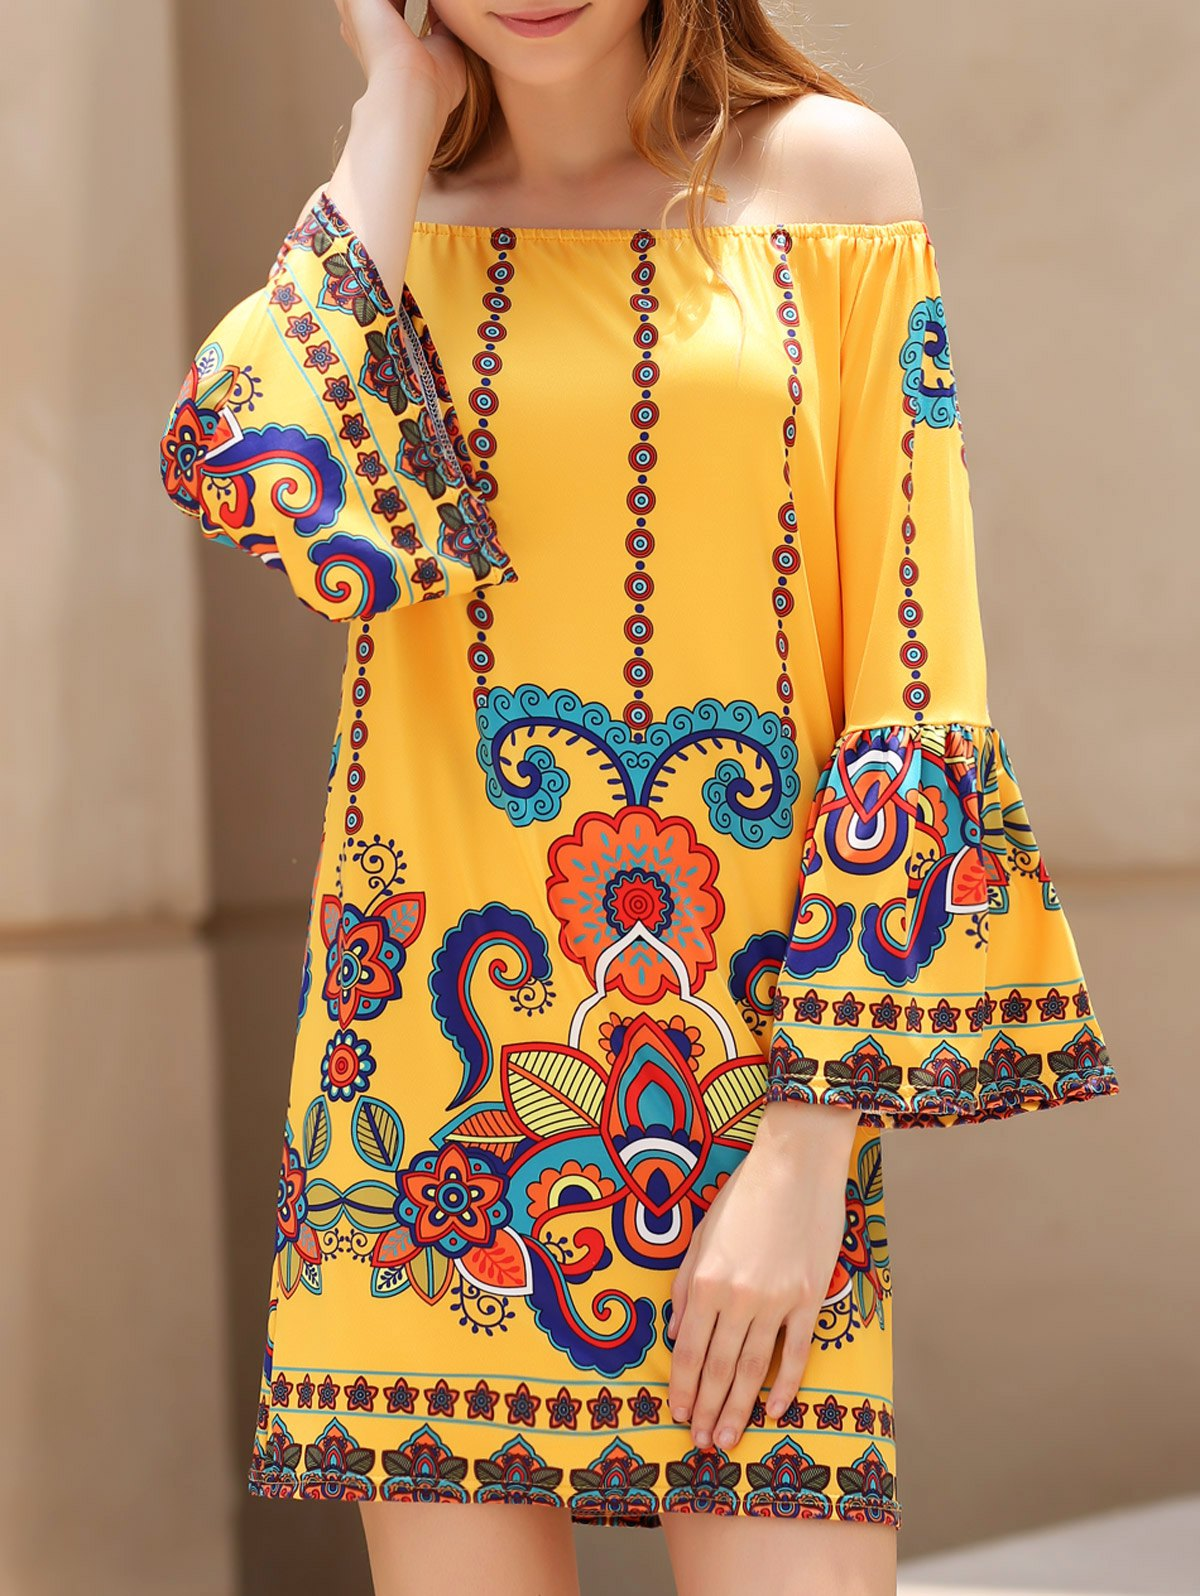 Scoop Neck 3/4 Sleeve Printed Dress